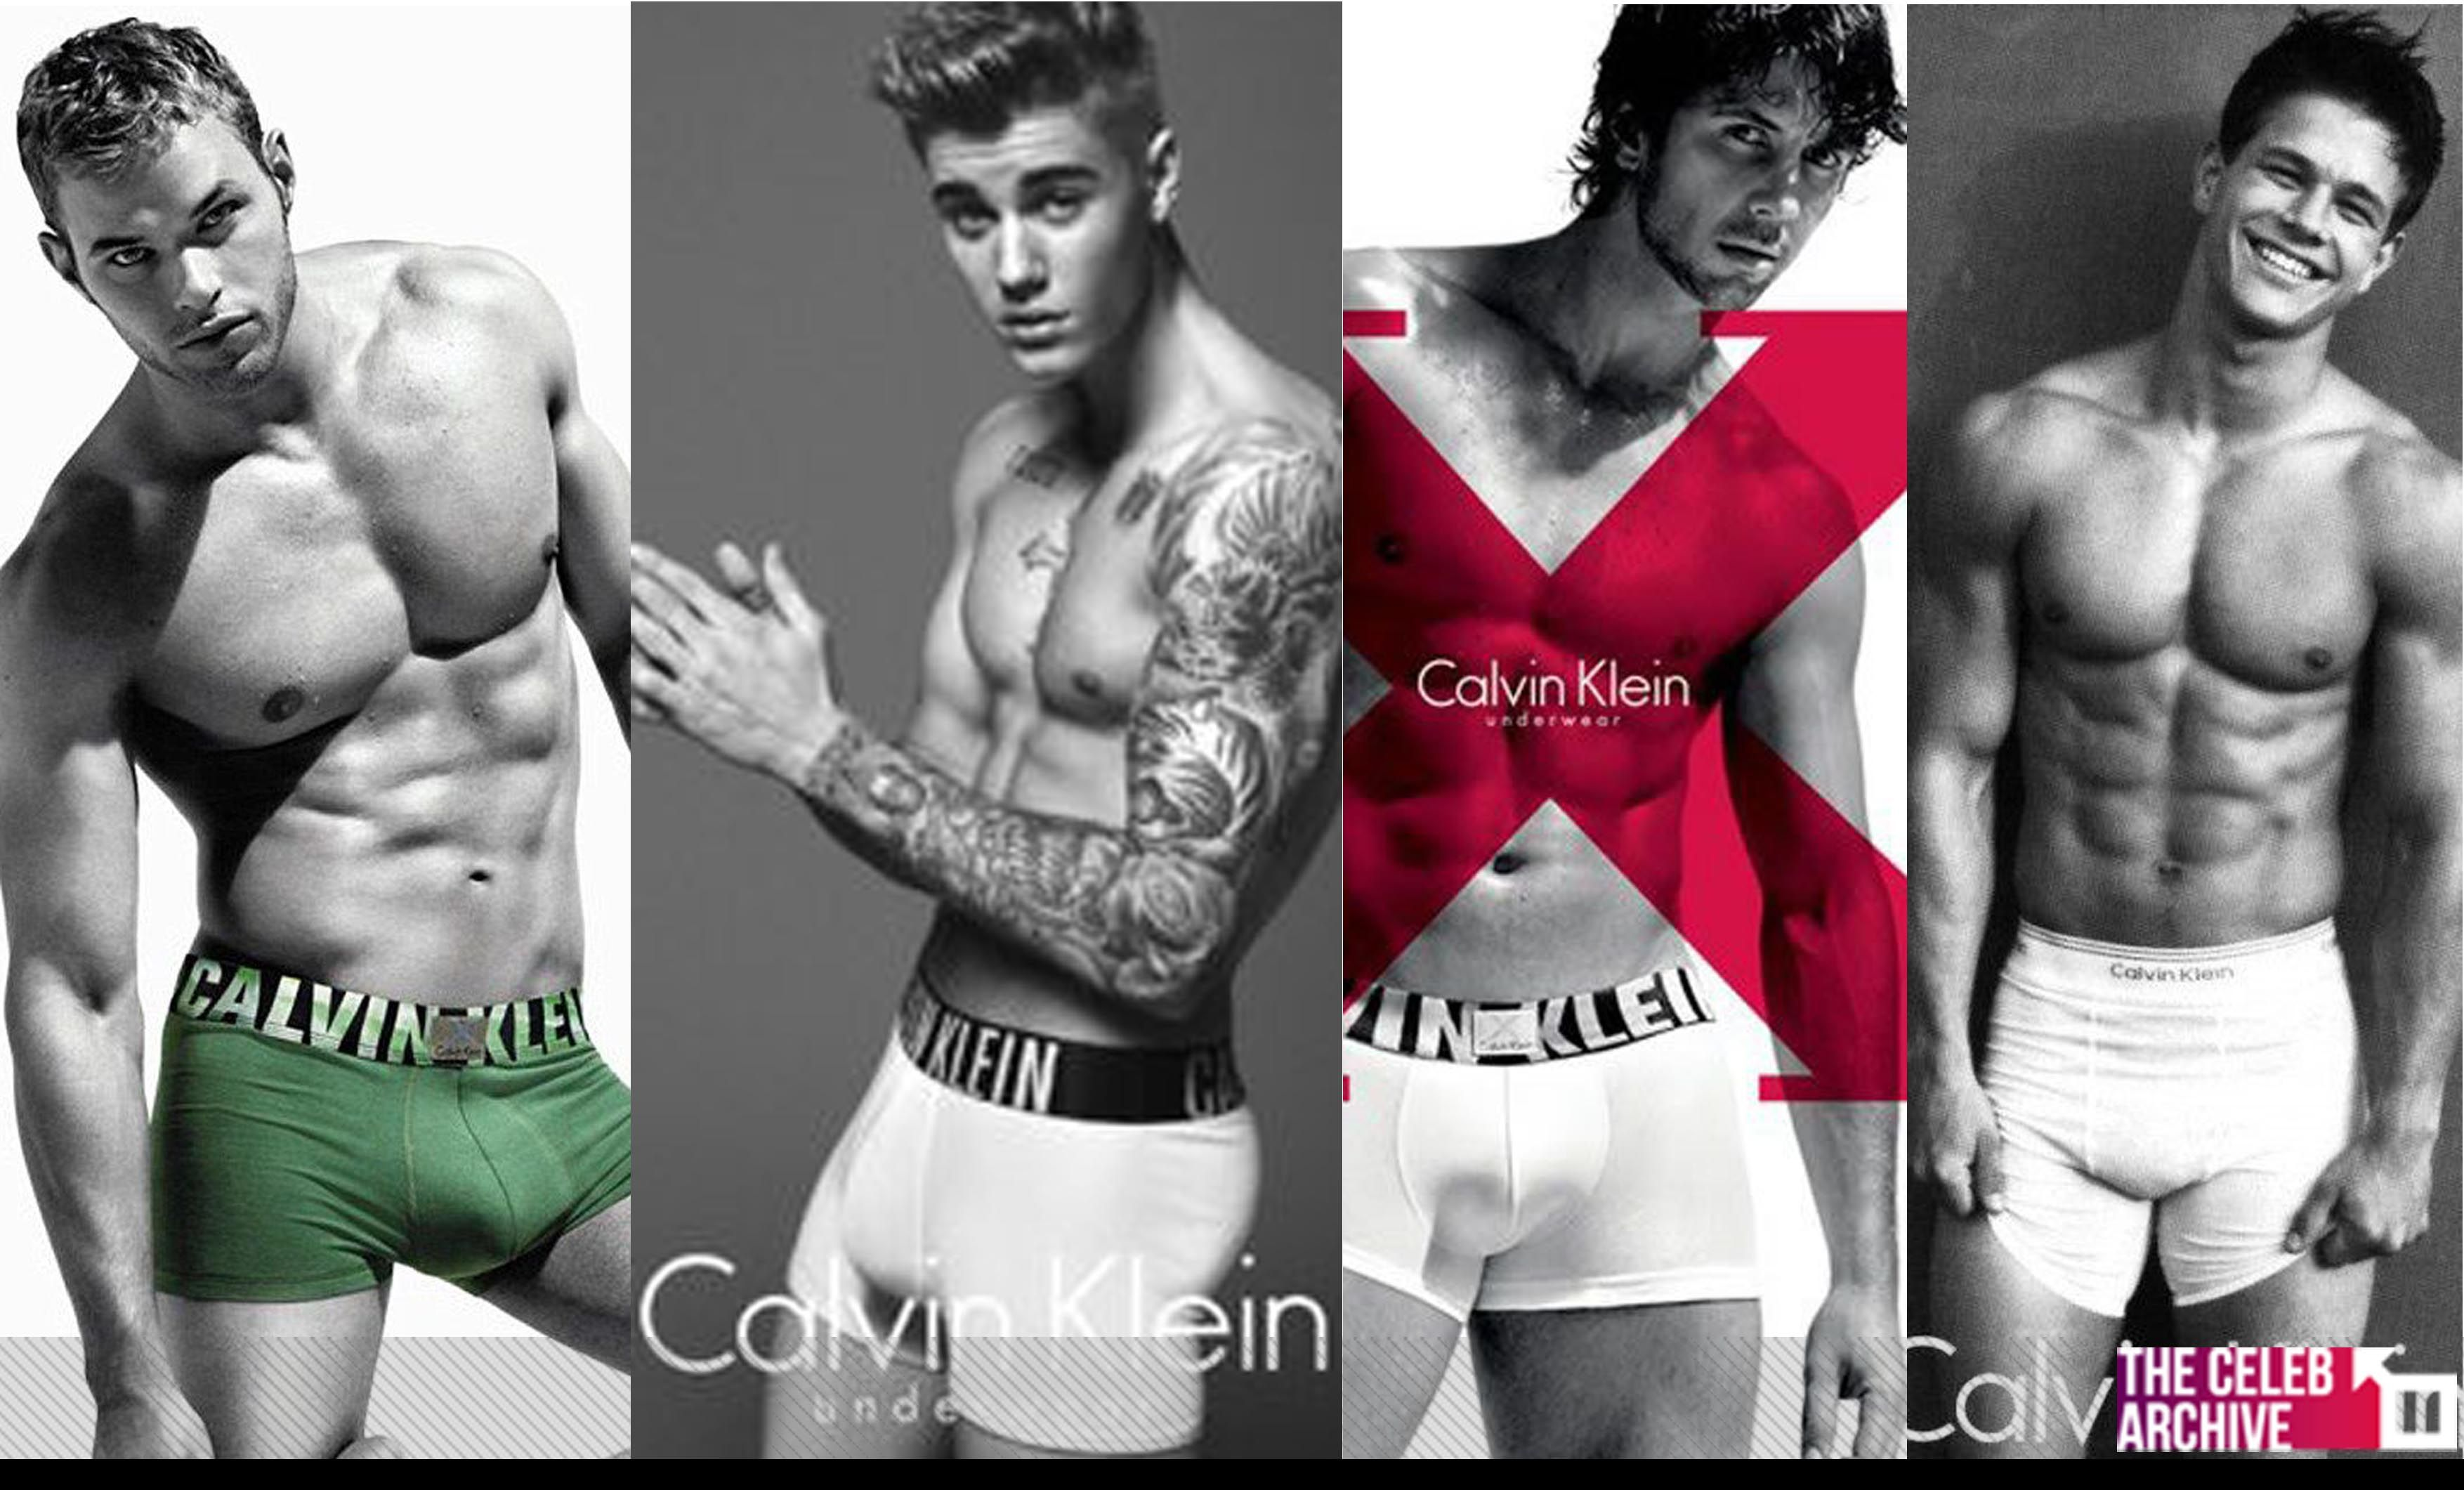 Calvin Klein  s Hottest Male Celebrity Models  Who wins  1. Kellan Lutz 2.  Justin Bieber 3. Fernando Verdasco! 4. Mark Wahlberg  6845b002ac54